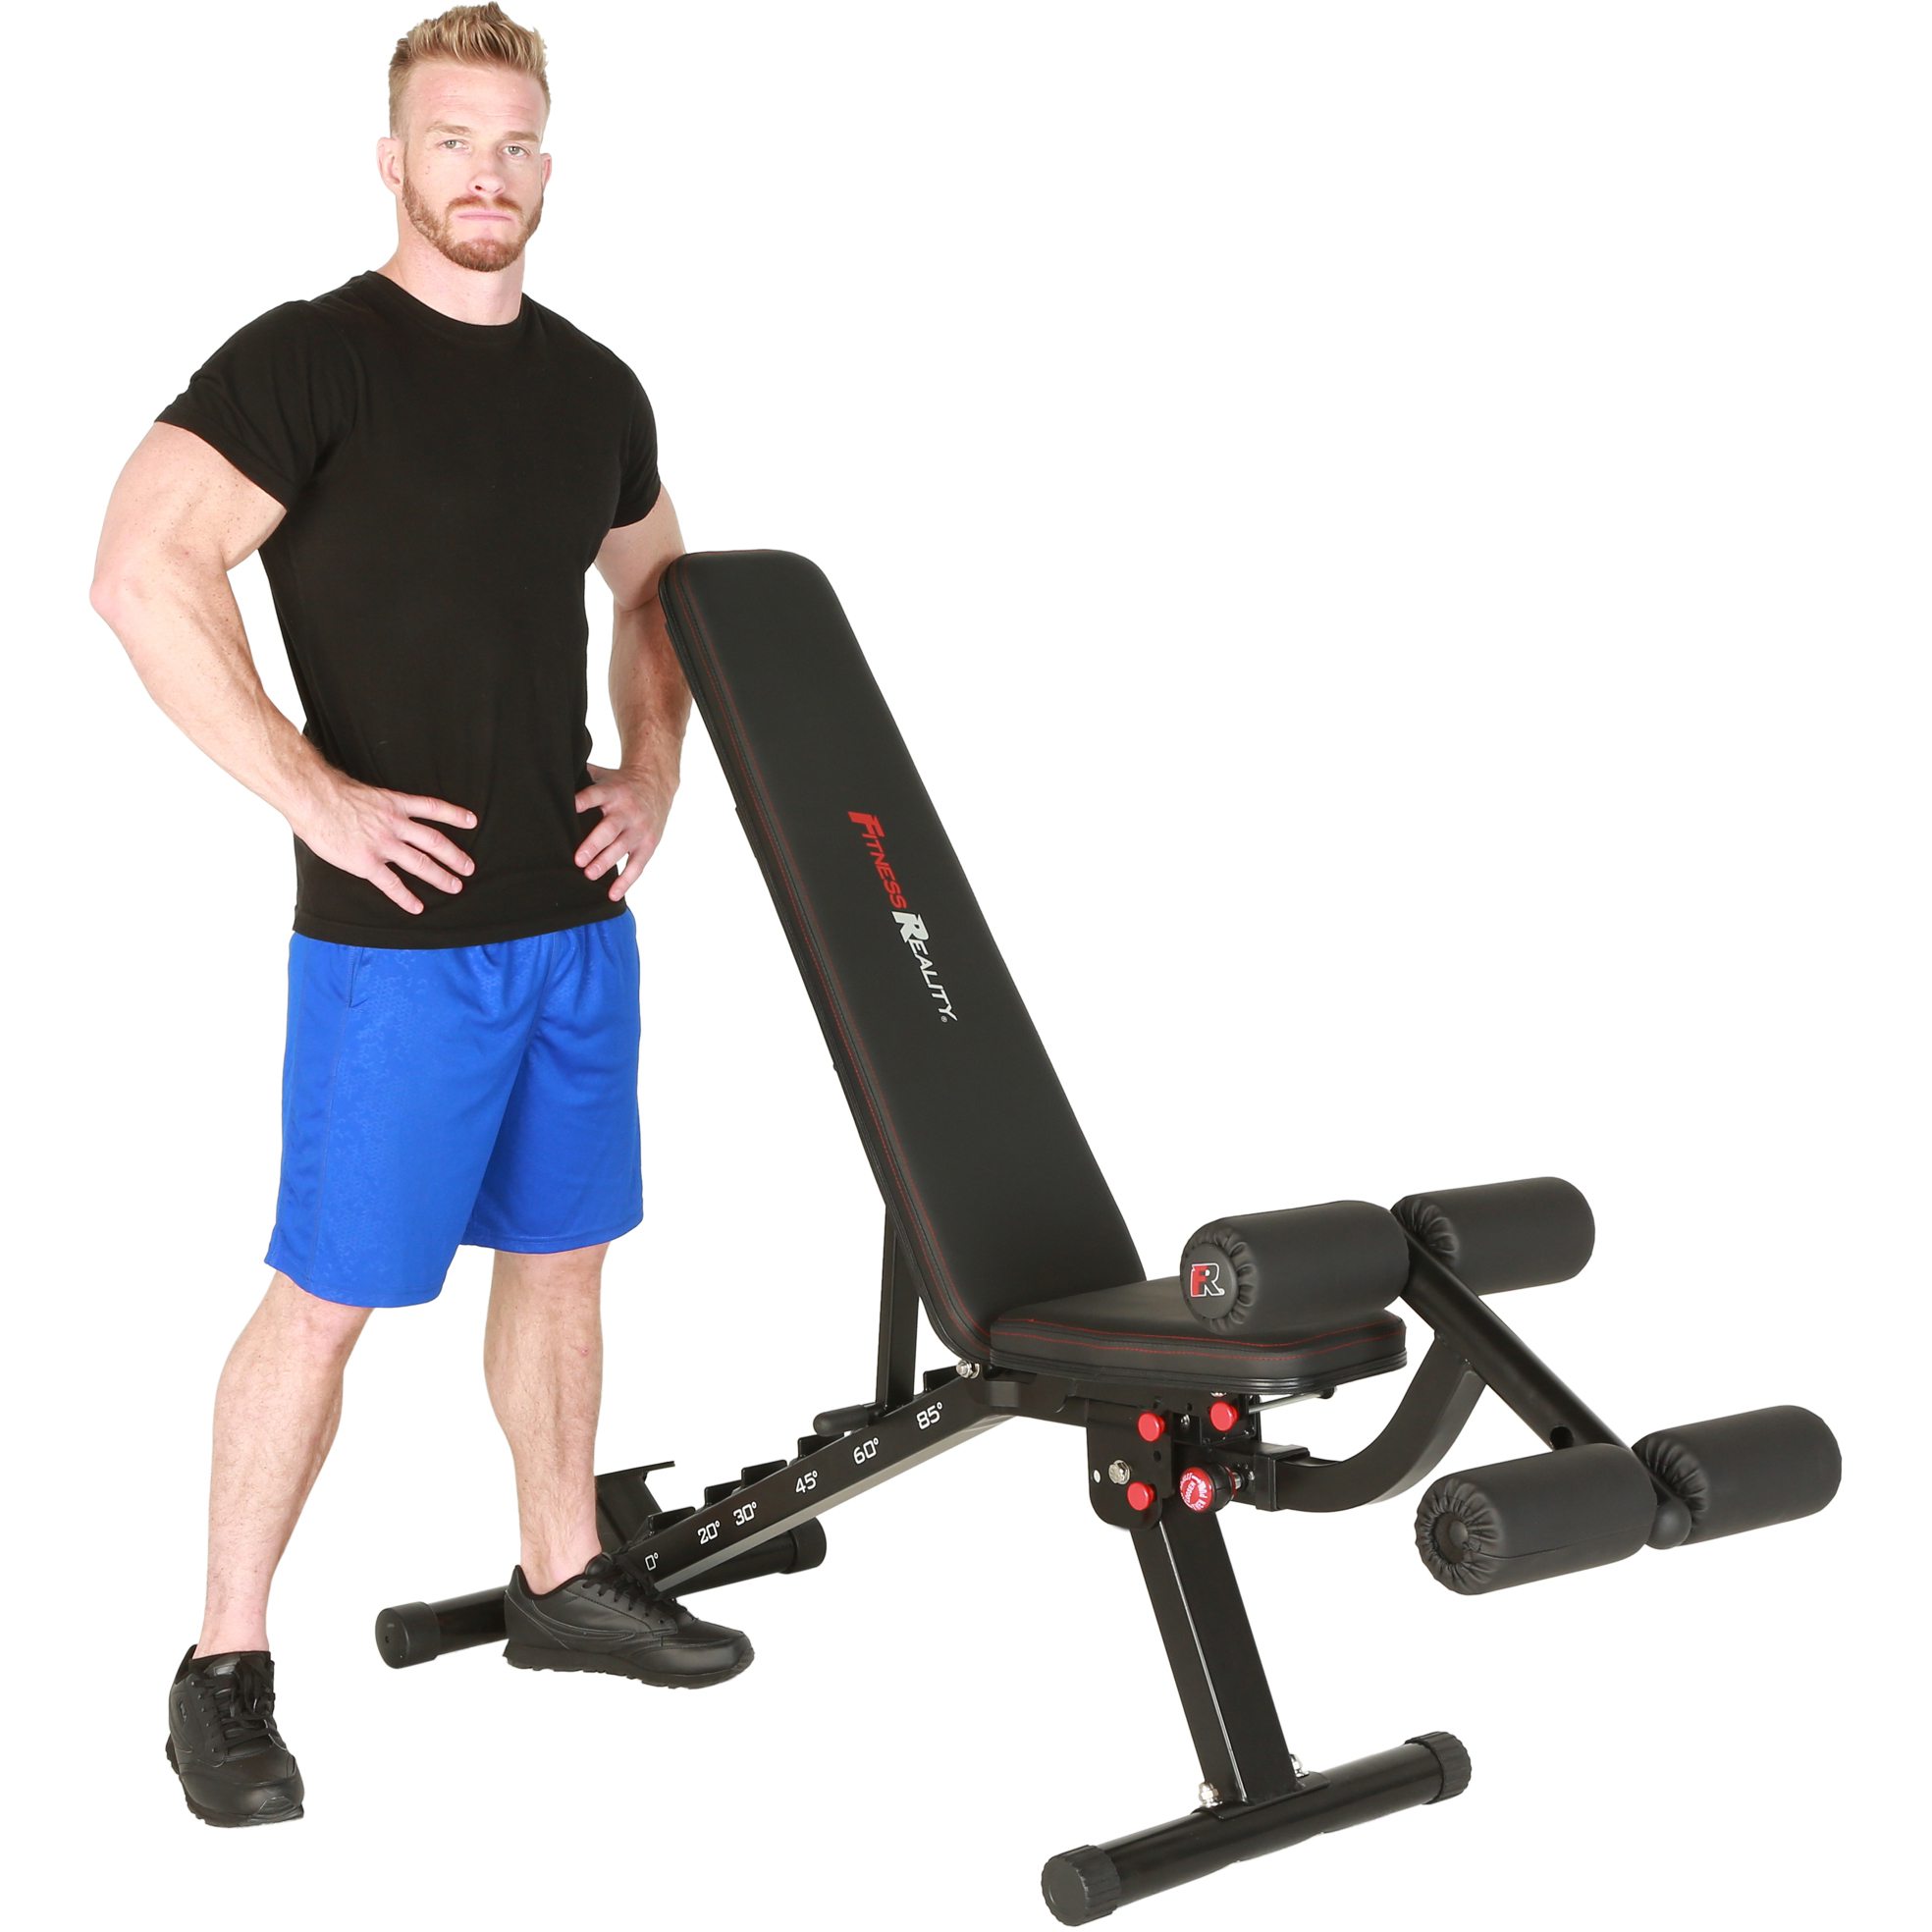 FITNESS REALITY 2000 Super Max XL Adjustable Utility FID Weight Bench with Detachable Leg Lock-Down